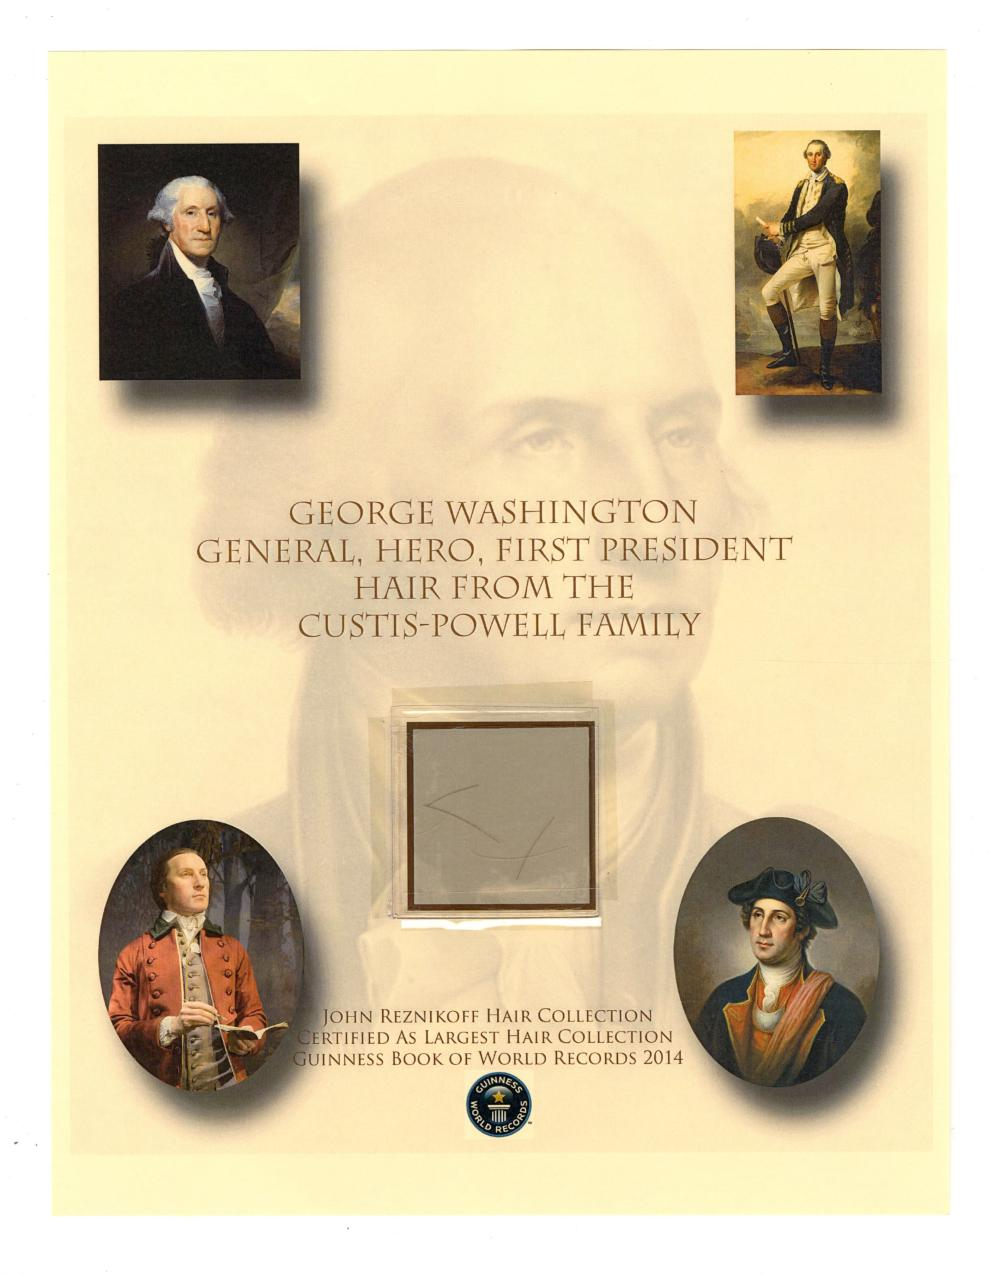 First U.S. President George Washington Several Strands of Hair